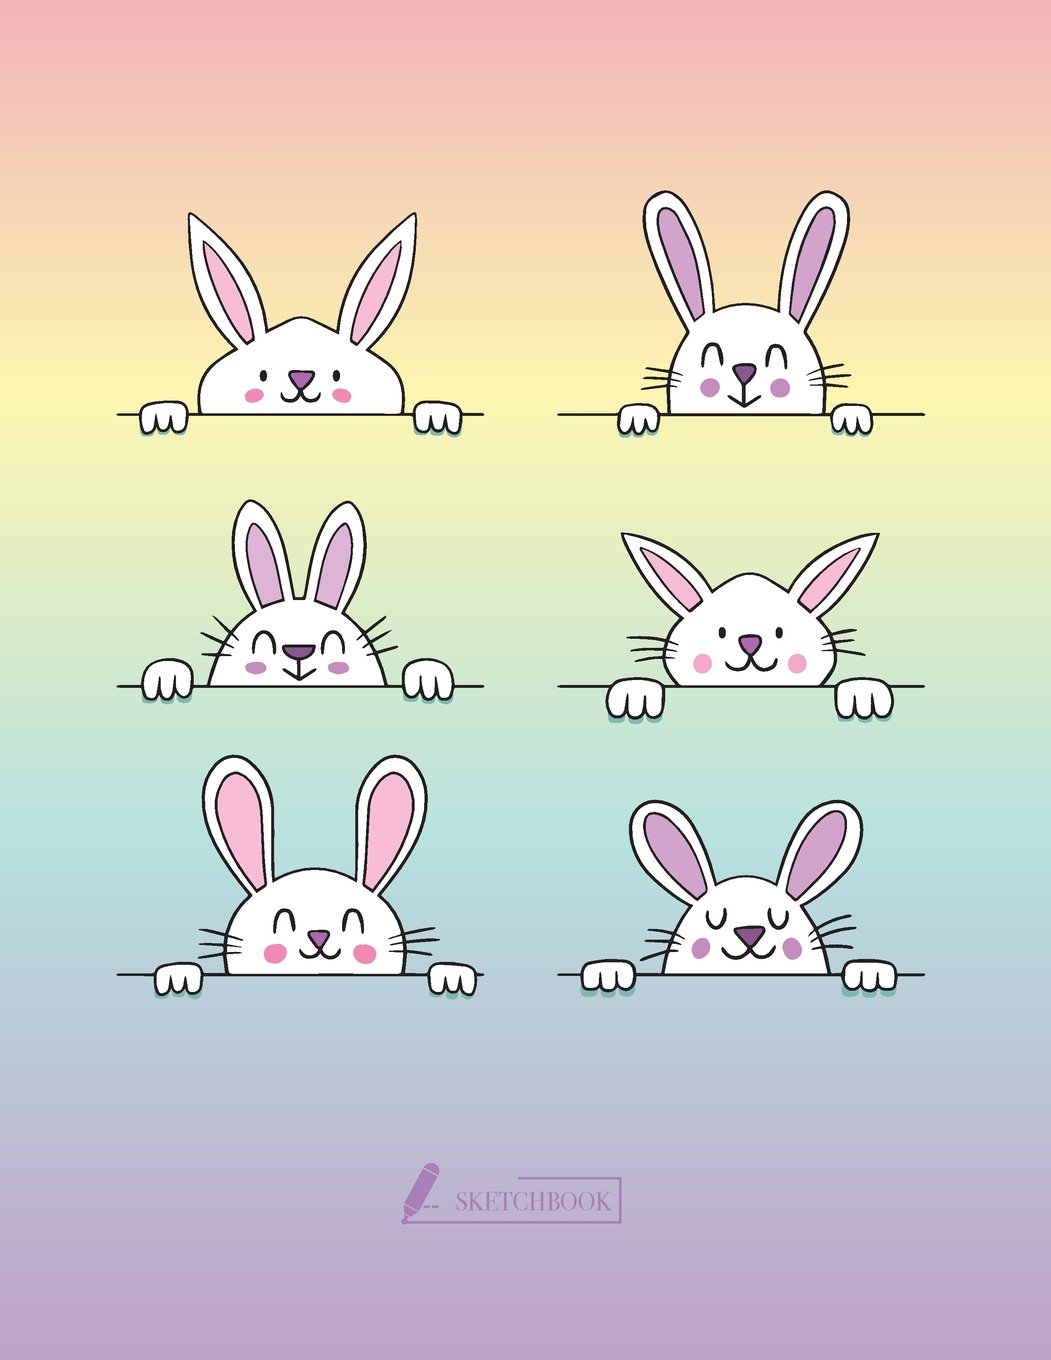 Sketch book: Cute rabbit cover (8.5 x 11)  inches 110 pages, Blank Unlined Paper for Sketching, Drawing , Whiting , Journaling & Doodling (Cute rabbit ... (8.5 x 11) inches, 110 pages) (Volume 3) pdf